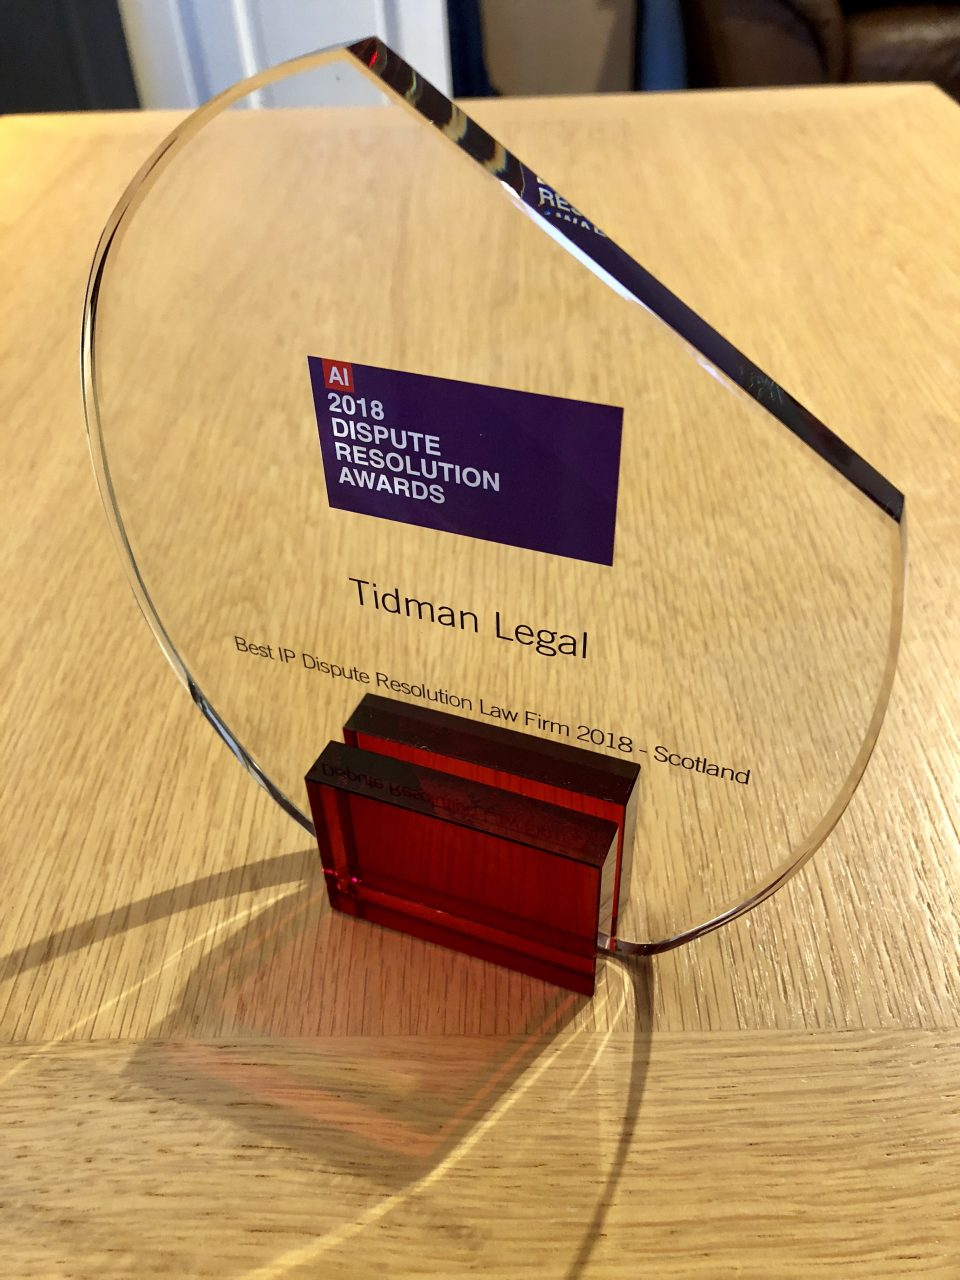 Tidman Legal awarded Scottish IP Dispute Resolution Law Firm of 2018